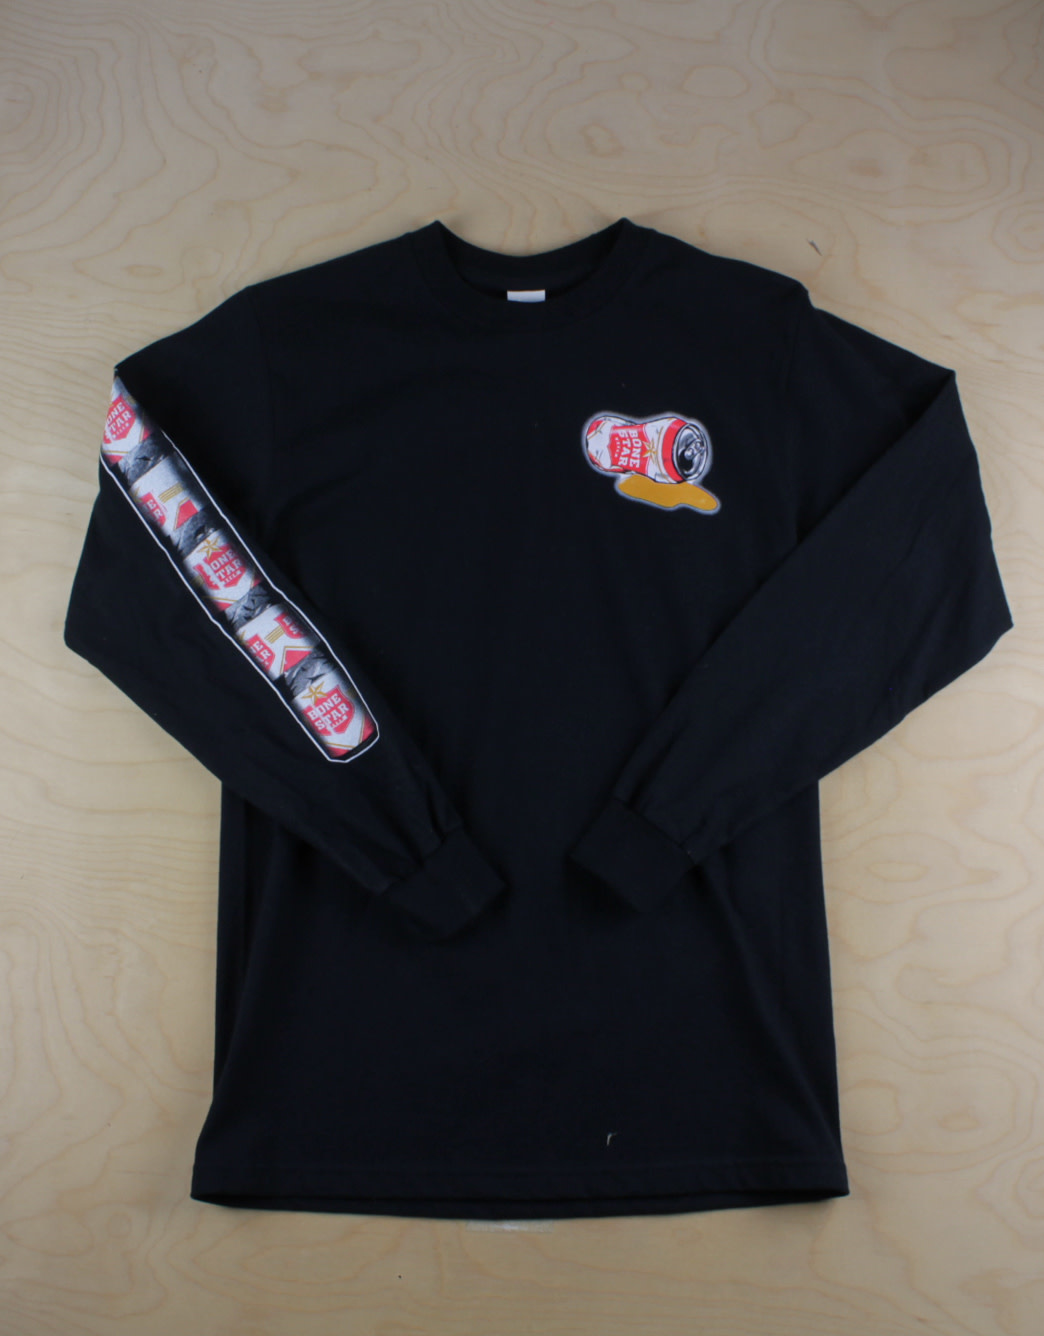 Ribsman - Bone Star L/S Black